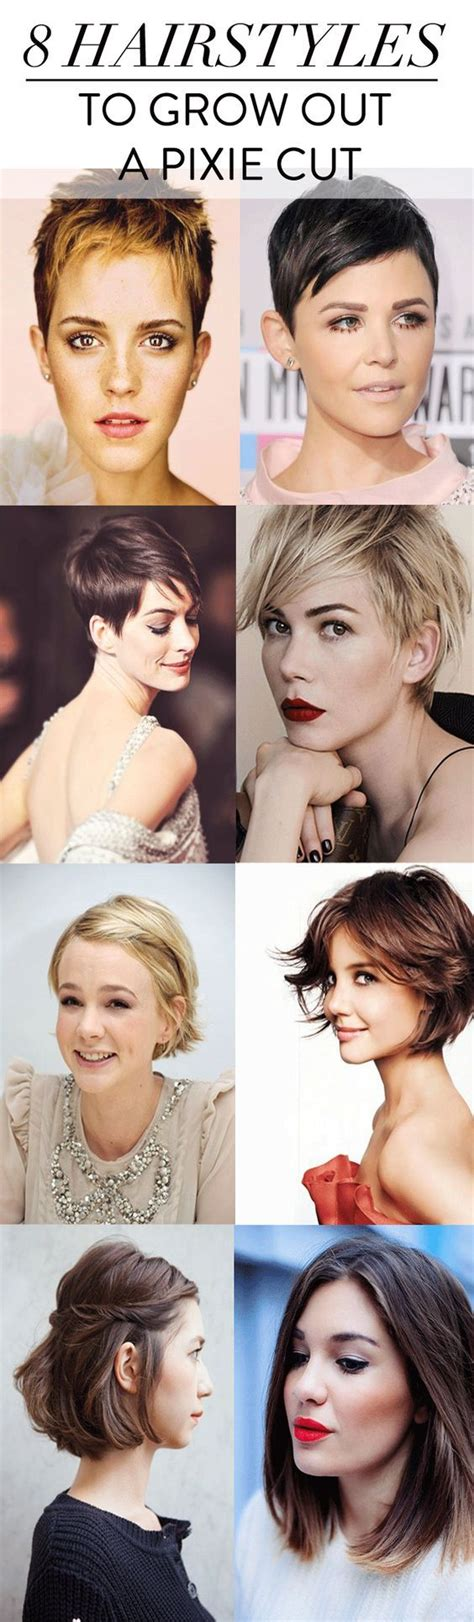 how to grow out a pixie gracefully style ideas for growing out a pixie cut